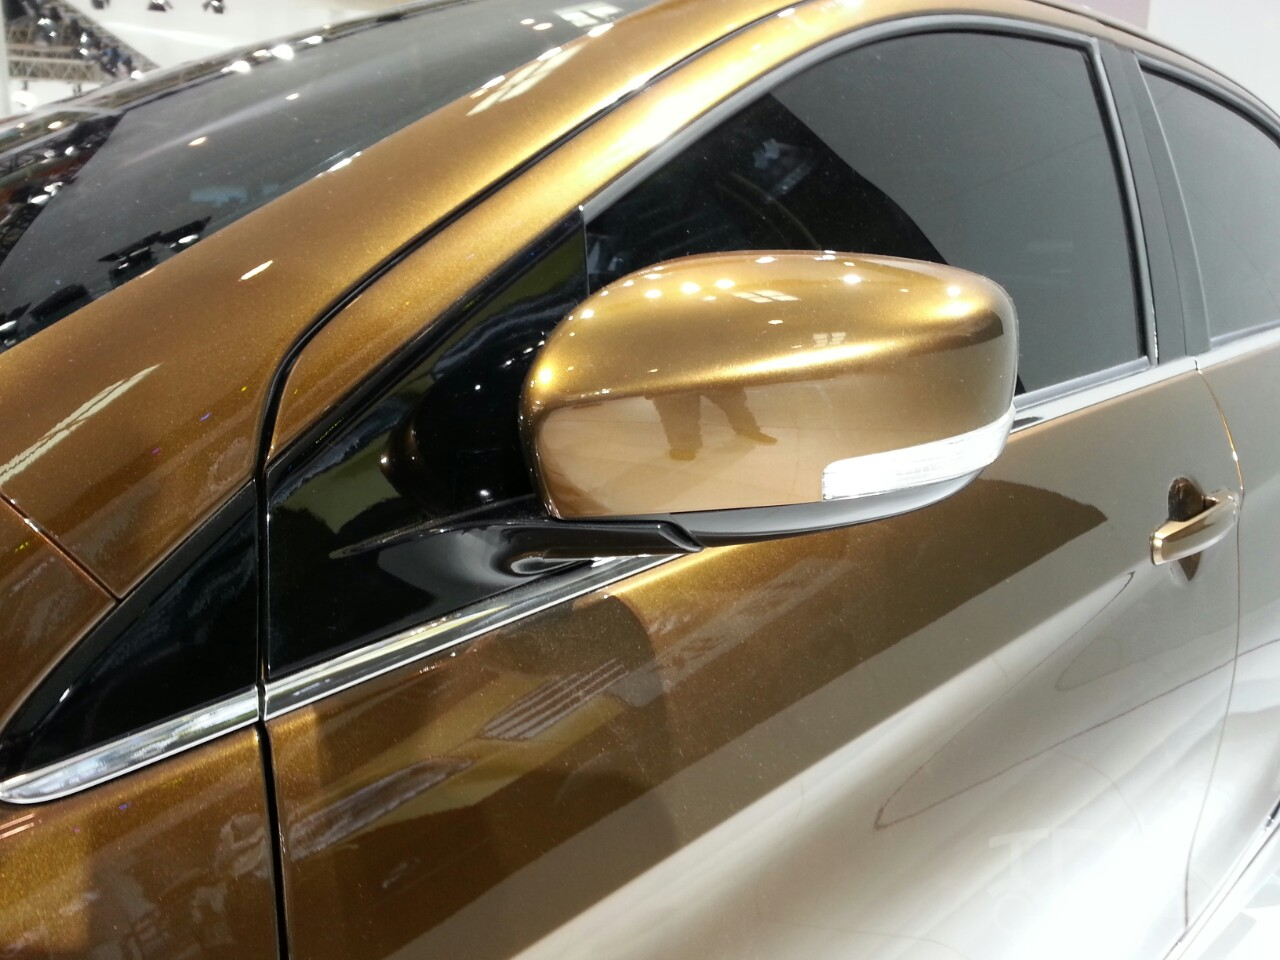 Suzuki Alivio mirror at Auto China 2014